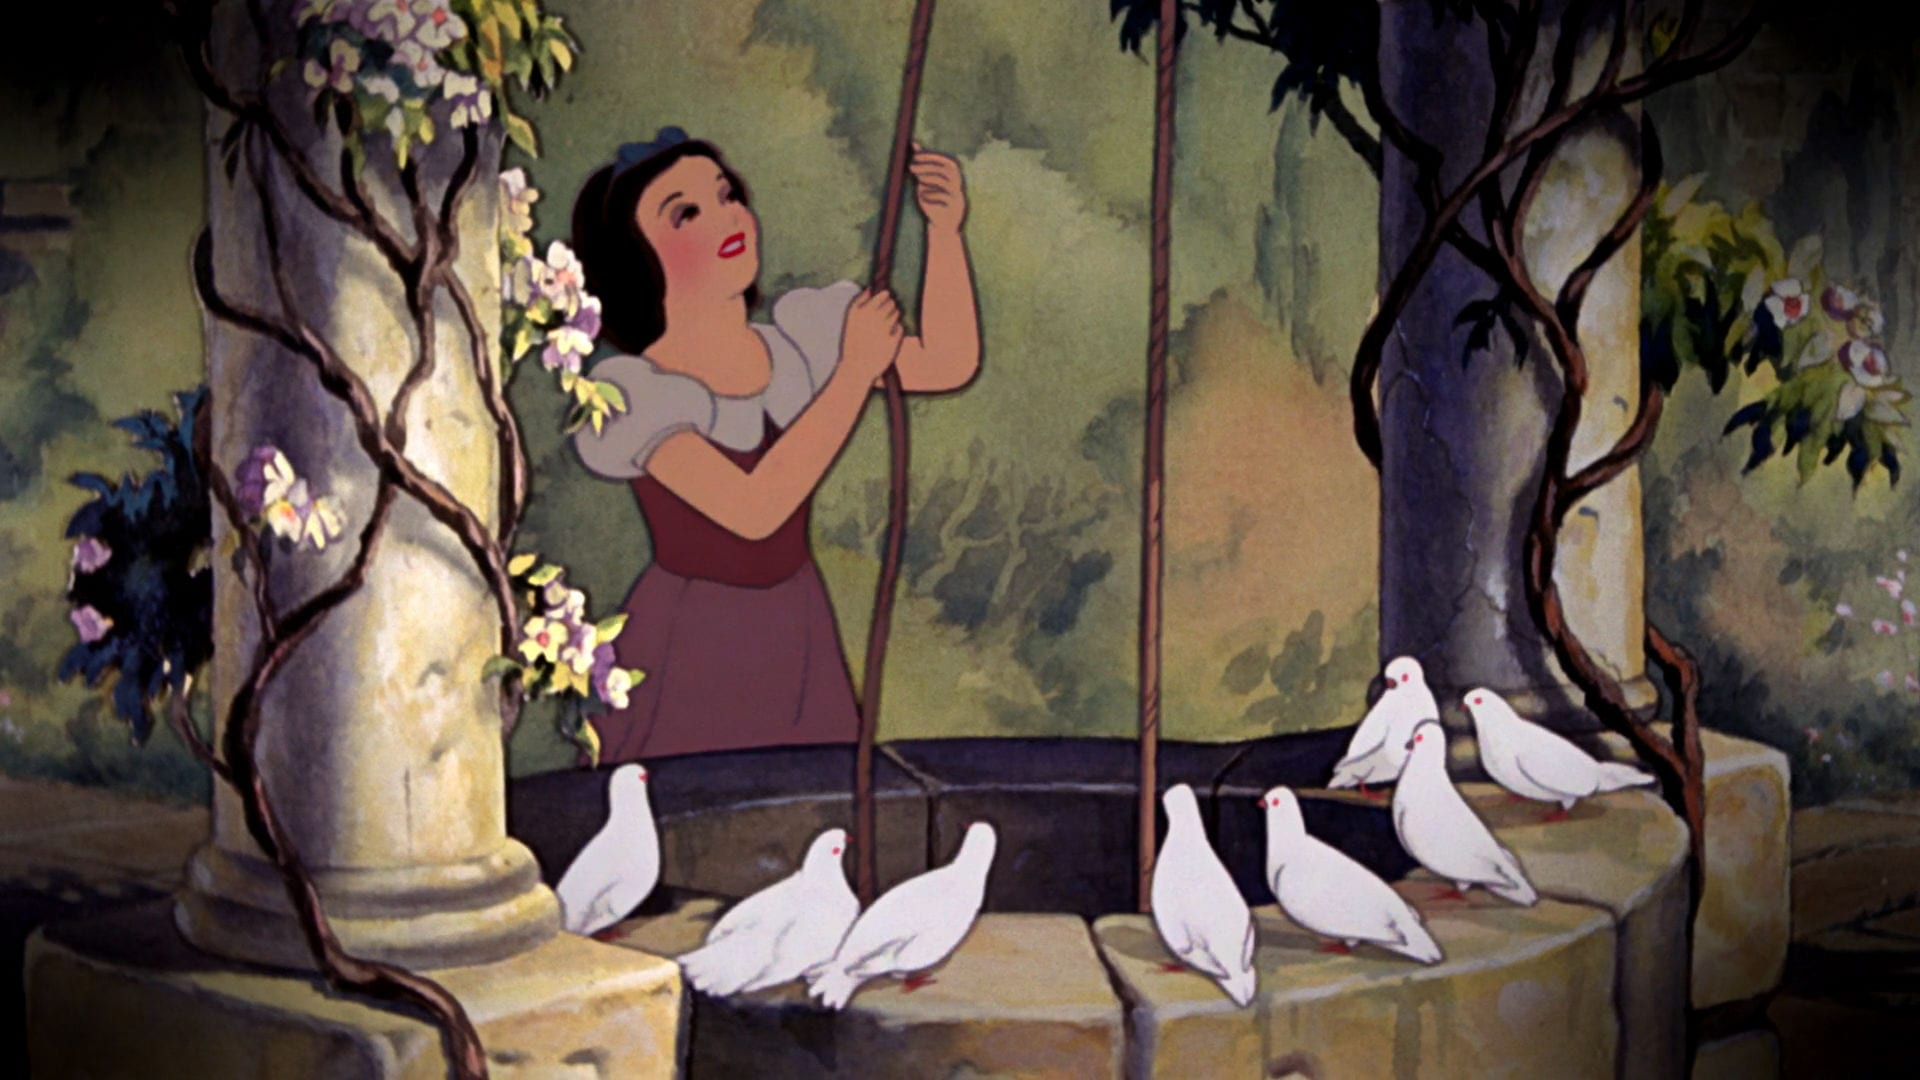 snow white and the seven dwarfs disney movies - Disney Princess Art And Activity Collection